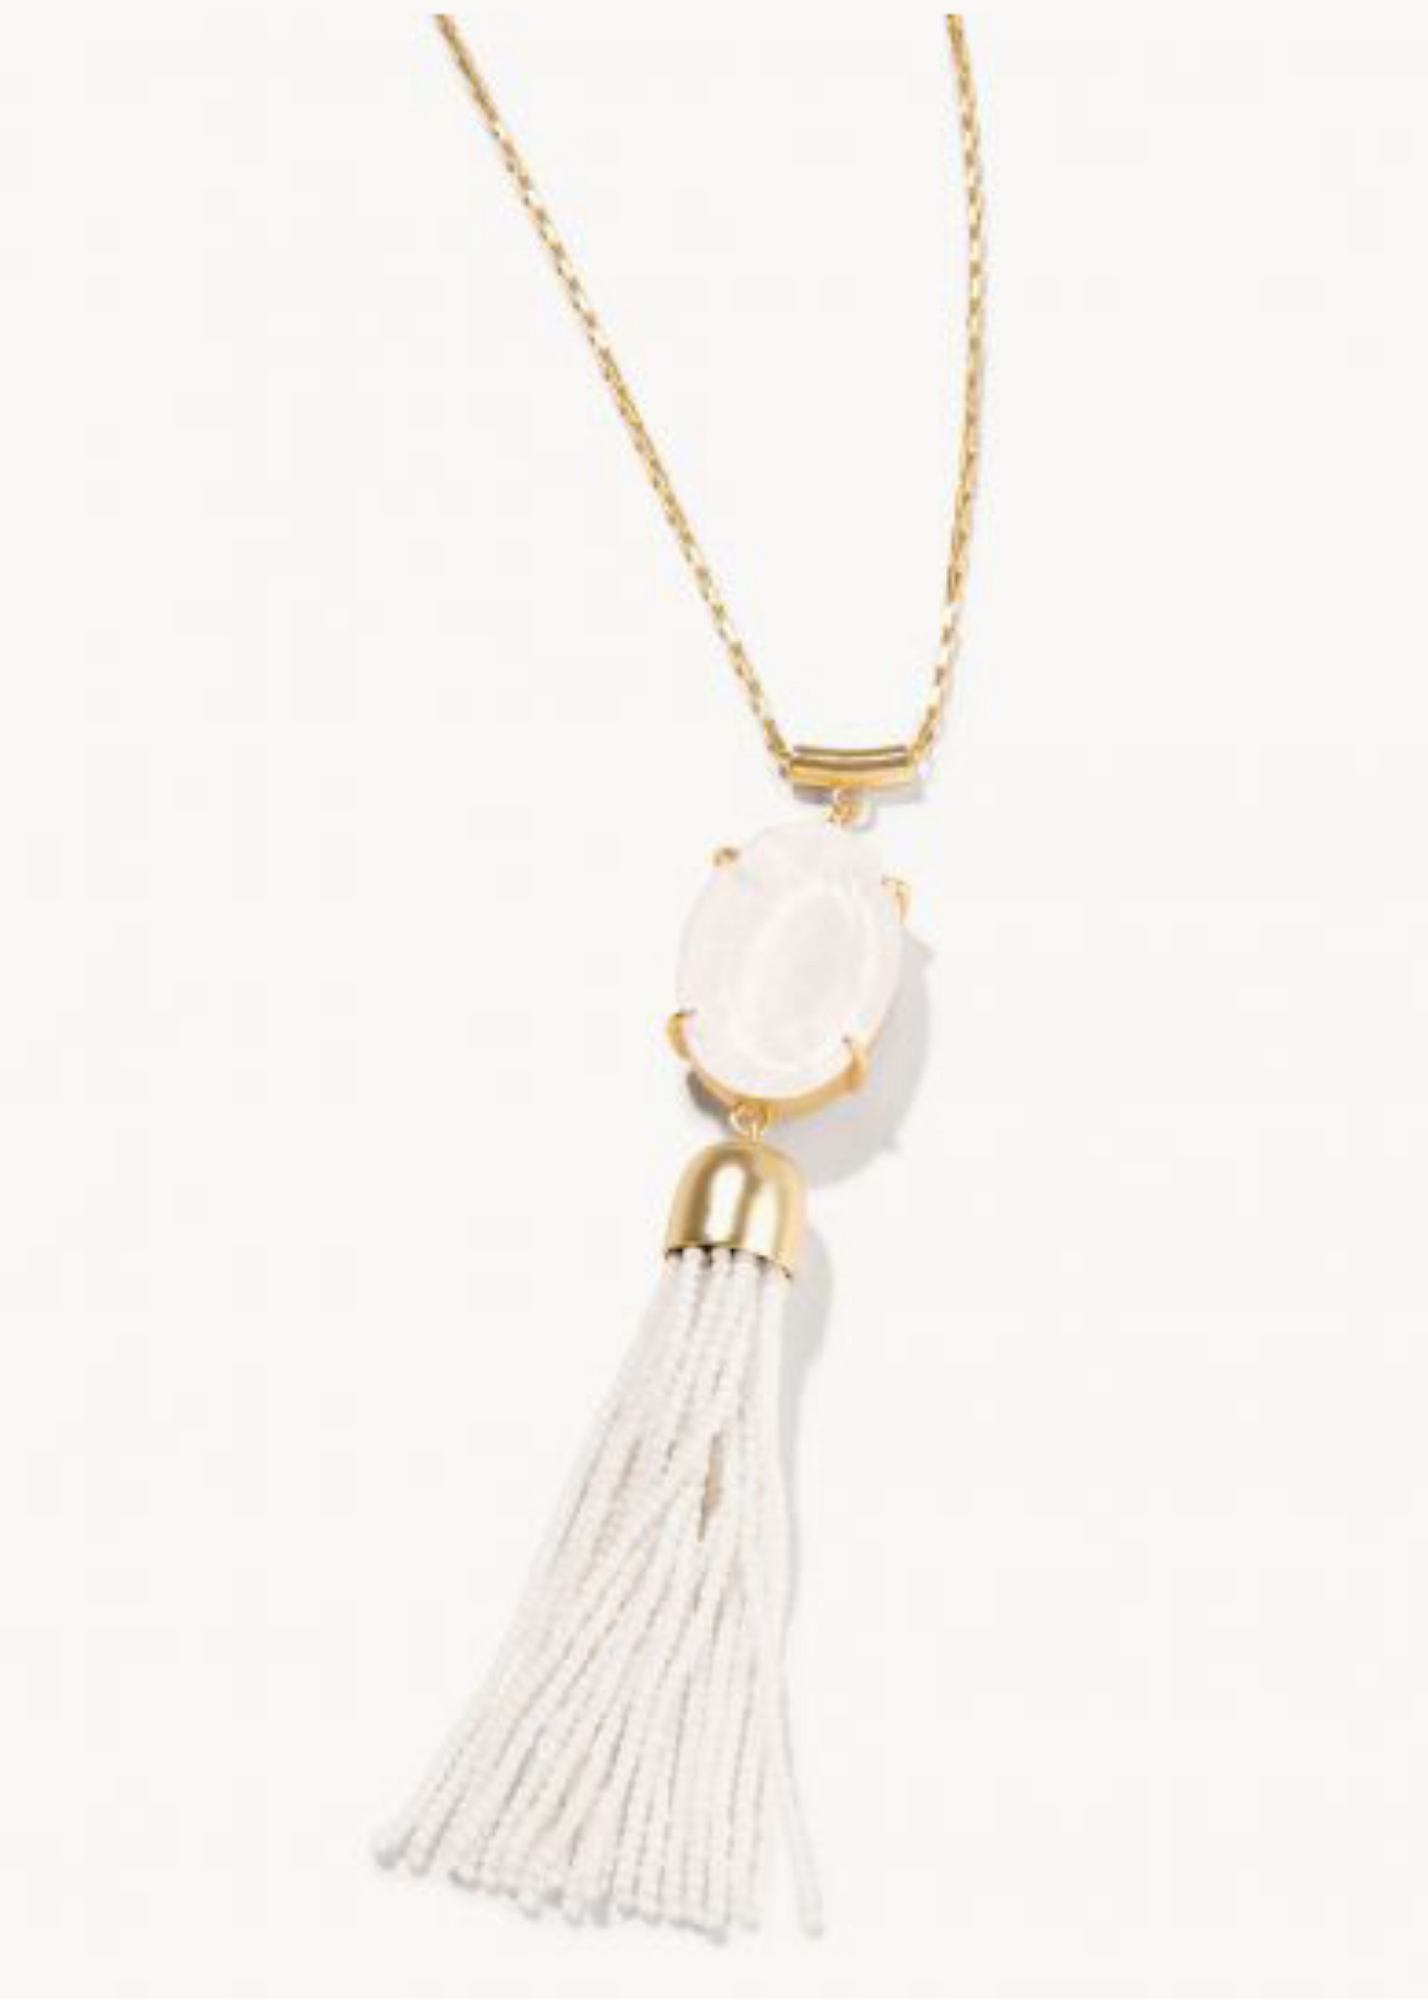 Mermaid Glass Oval Tassel Necklace - Gold/White